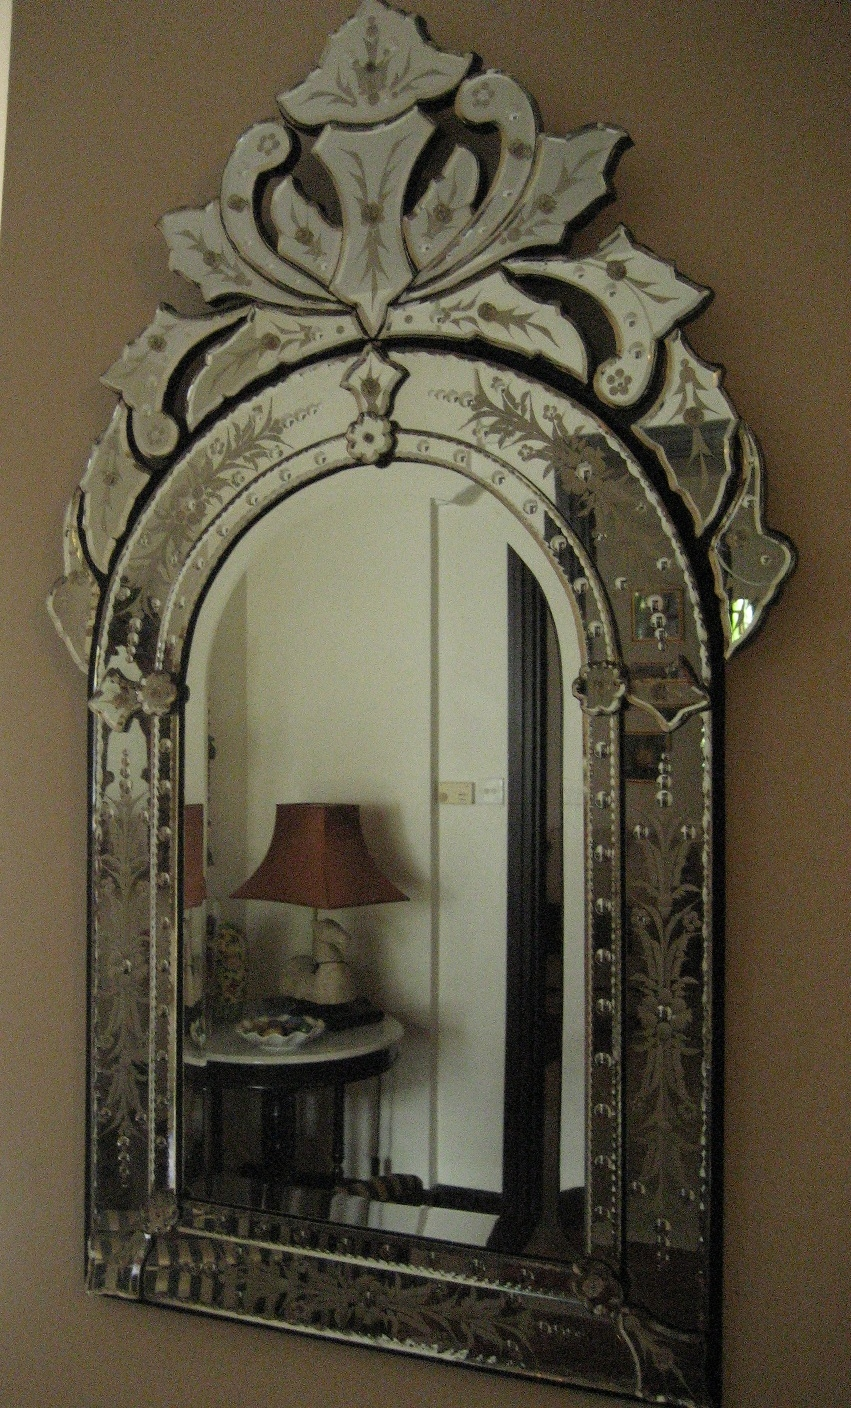 Venetian Mirrors Home Decor Furnishings Sale In Kuala Lumpur Intended For Venetian Mirror Sale (Image 14 of 15)